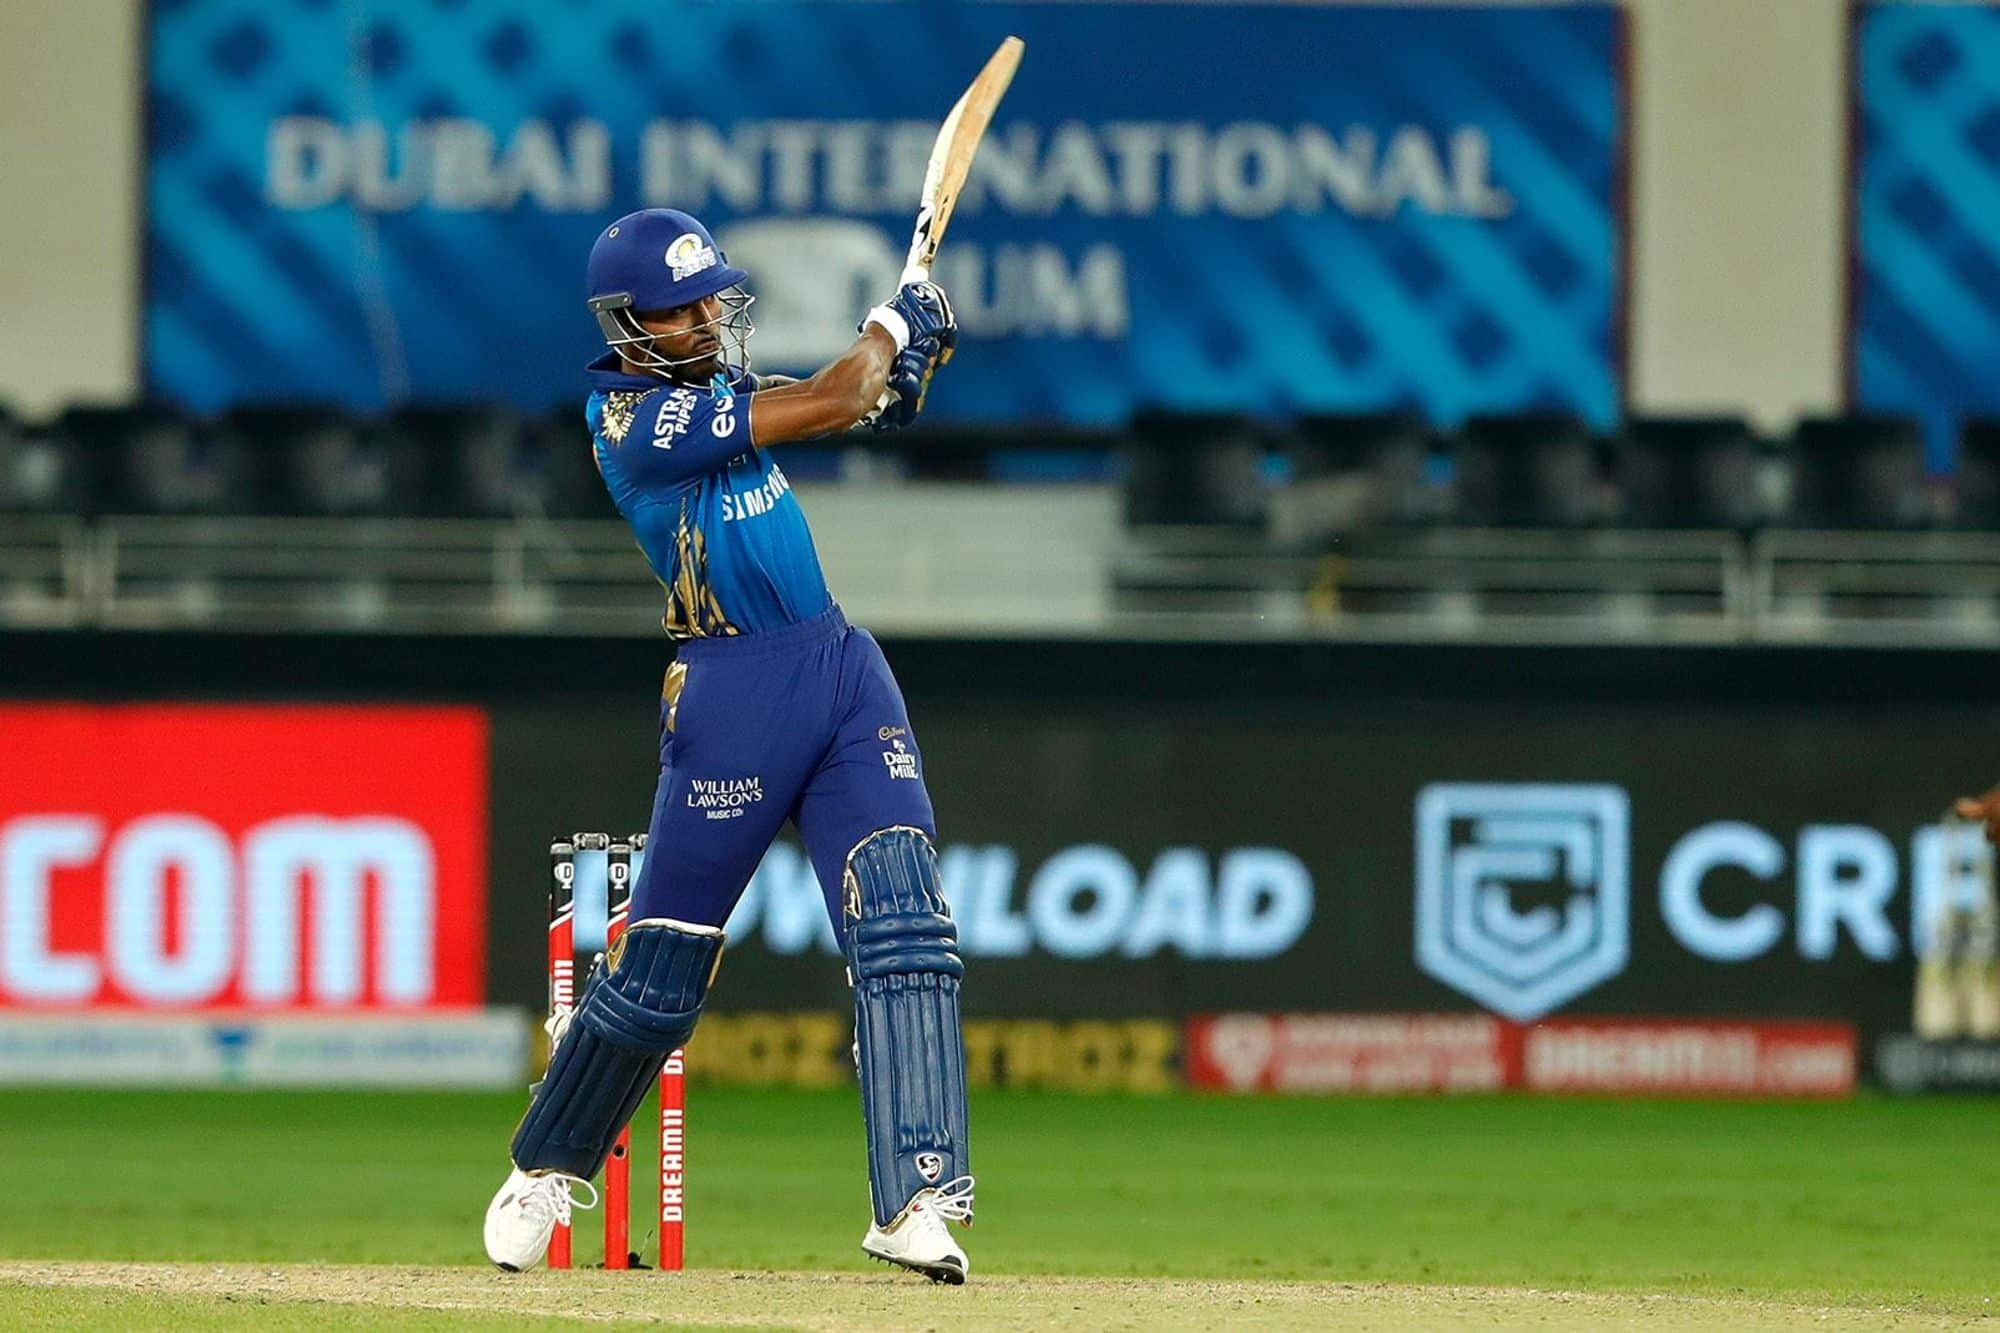 IPL MI vs DC Match Report: Hardik, Ishan help Mumbai Indians overcome Delhi Capitals in Qualifier 1